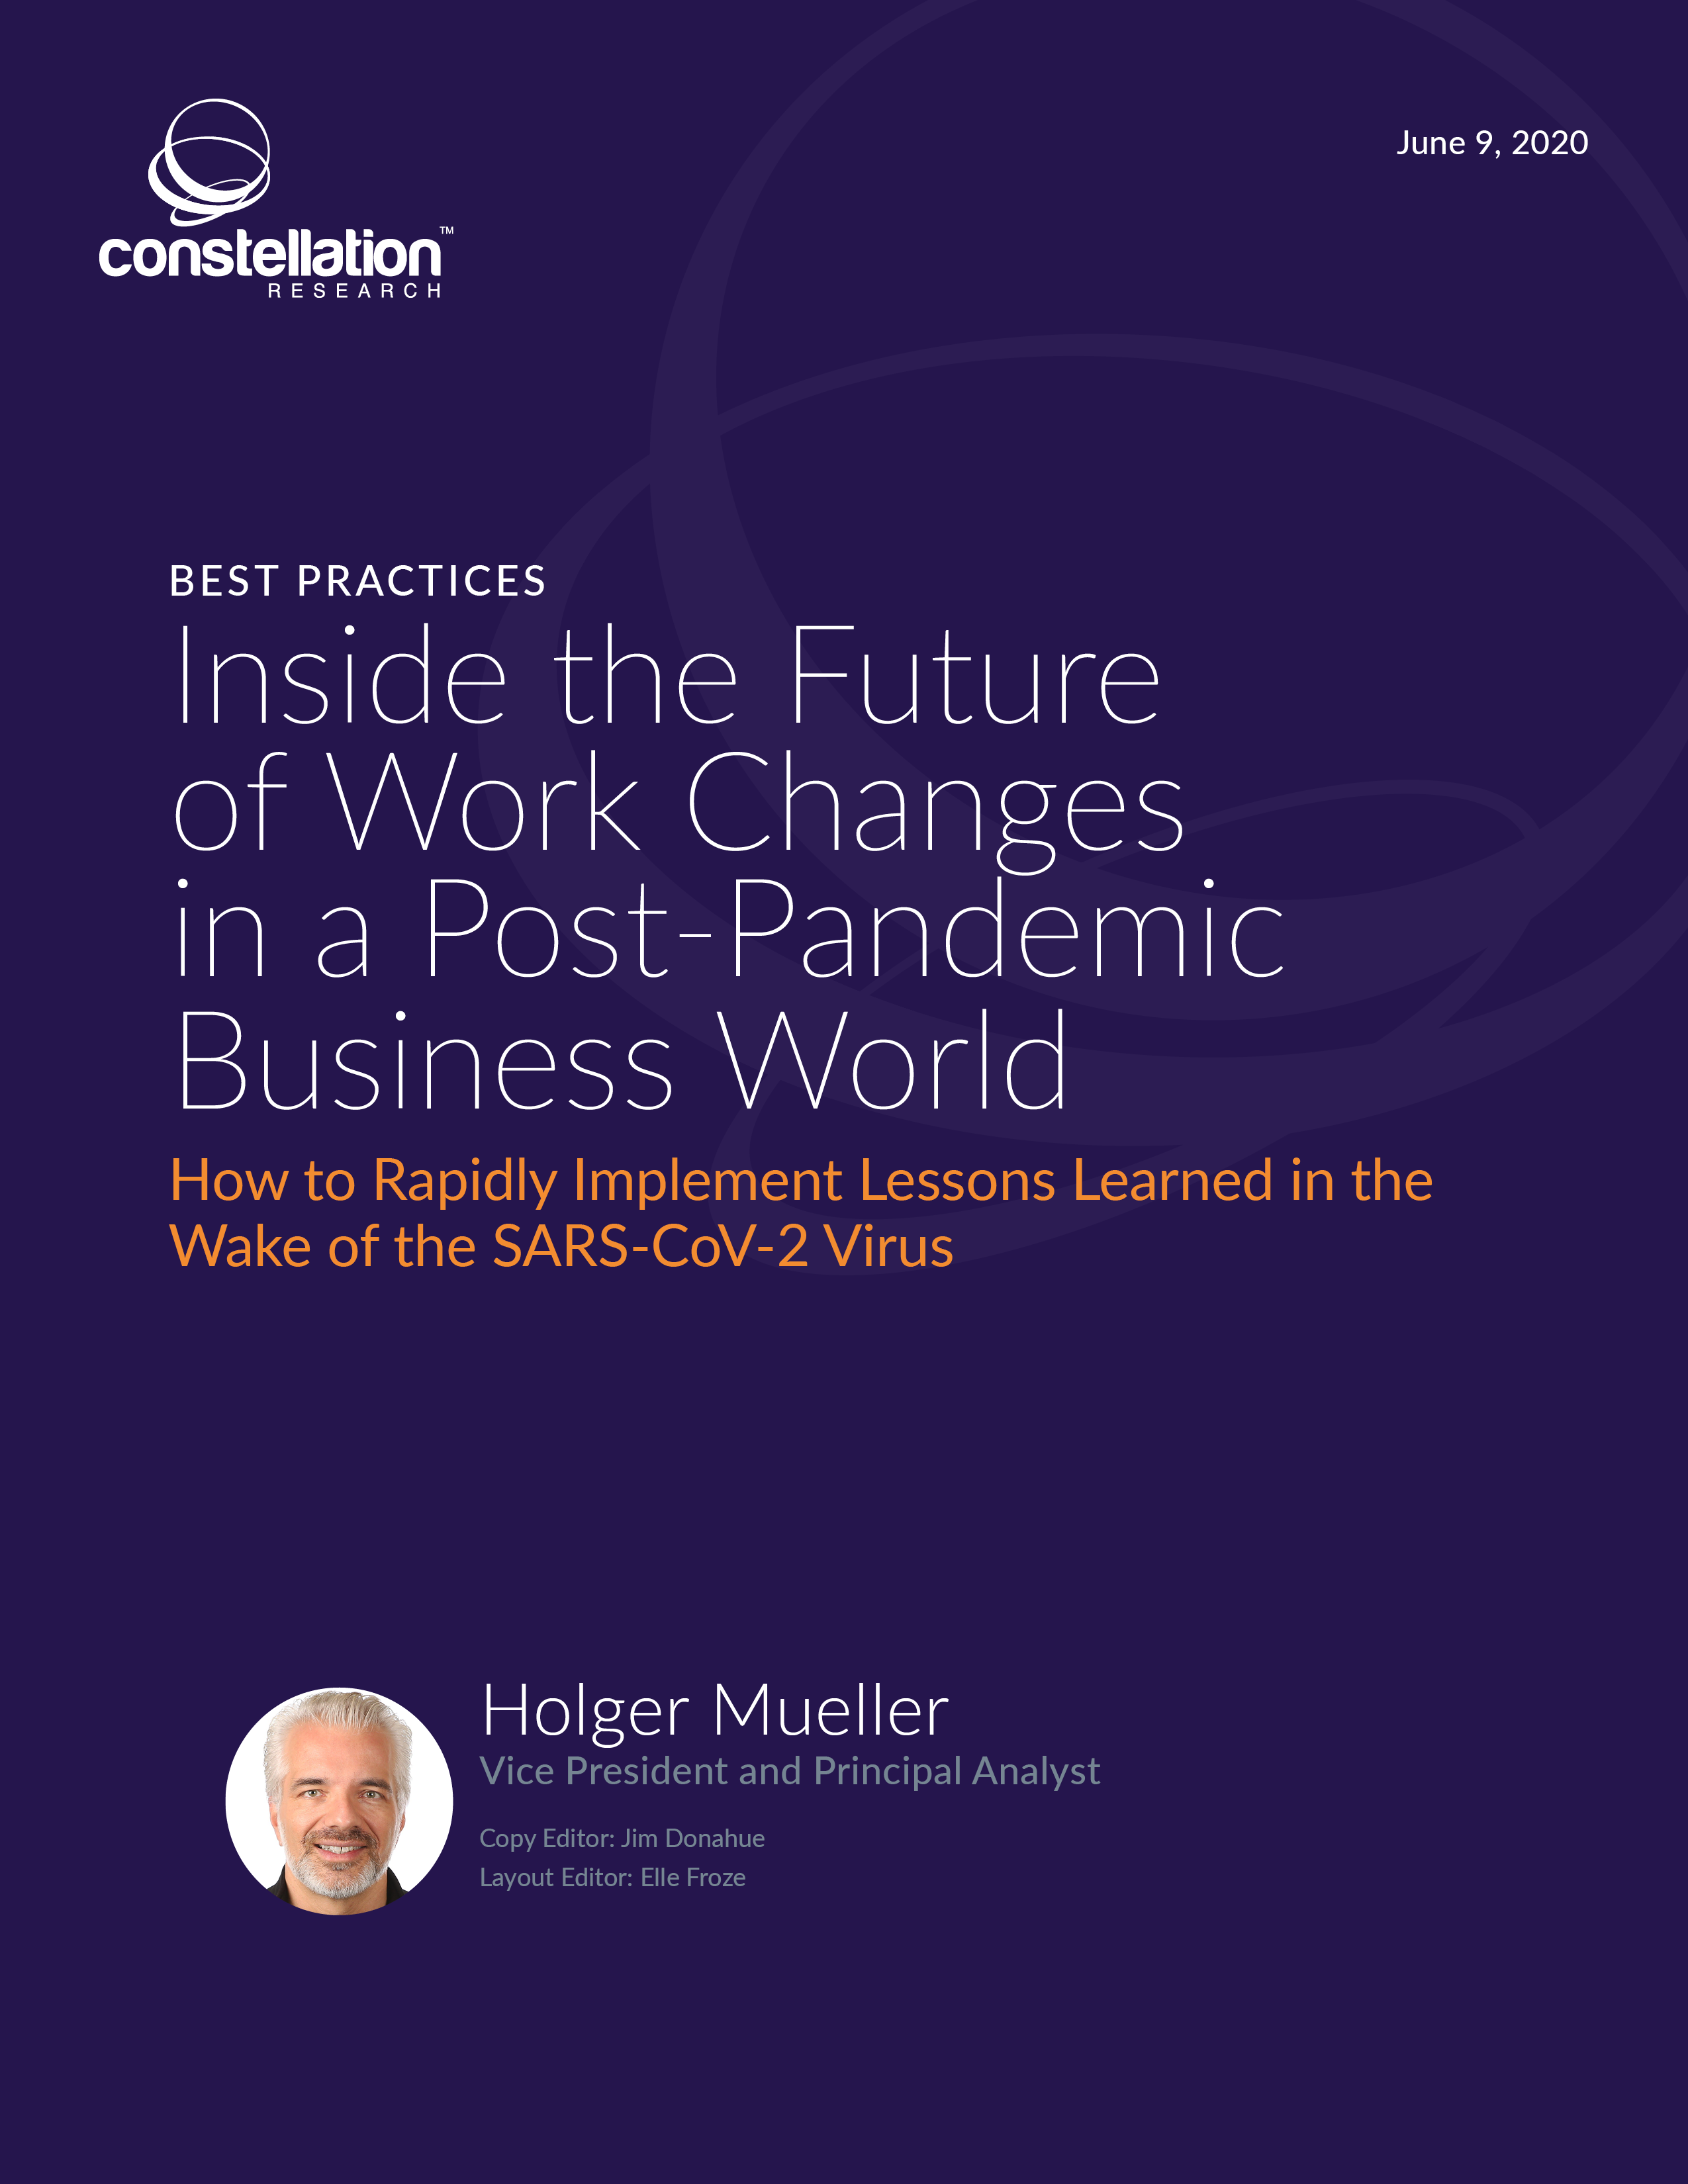 Inside the Future of Work Changes in a Post-Pandemic Business World